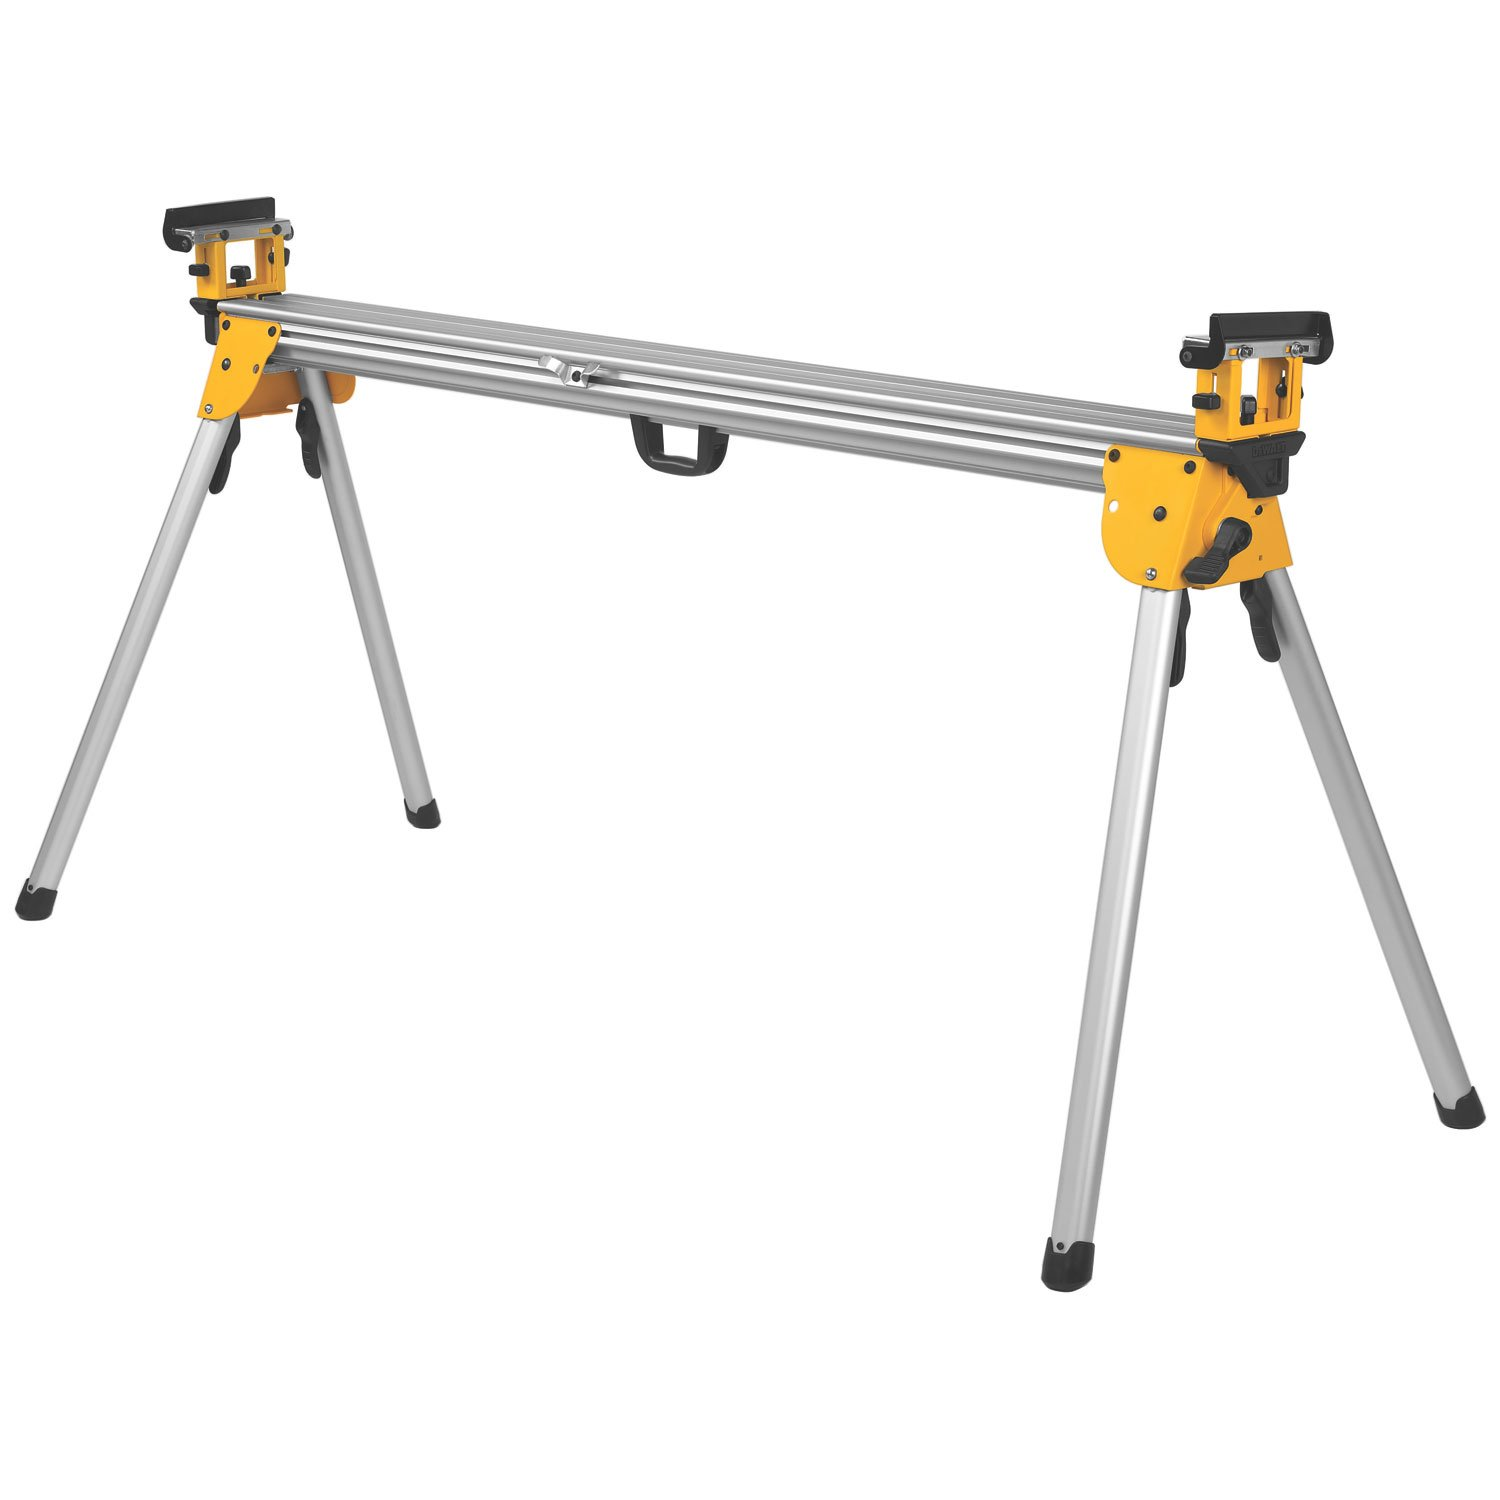 DEWALT DWX723 Heavy Duty Miter Saw Stand by DEWALT